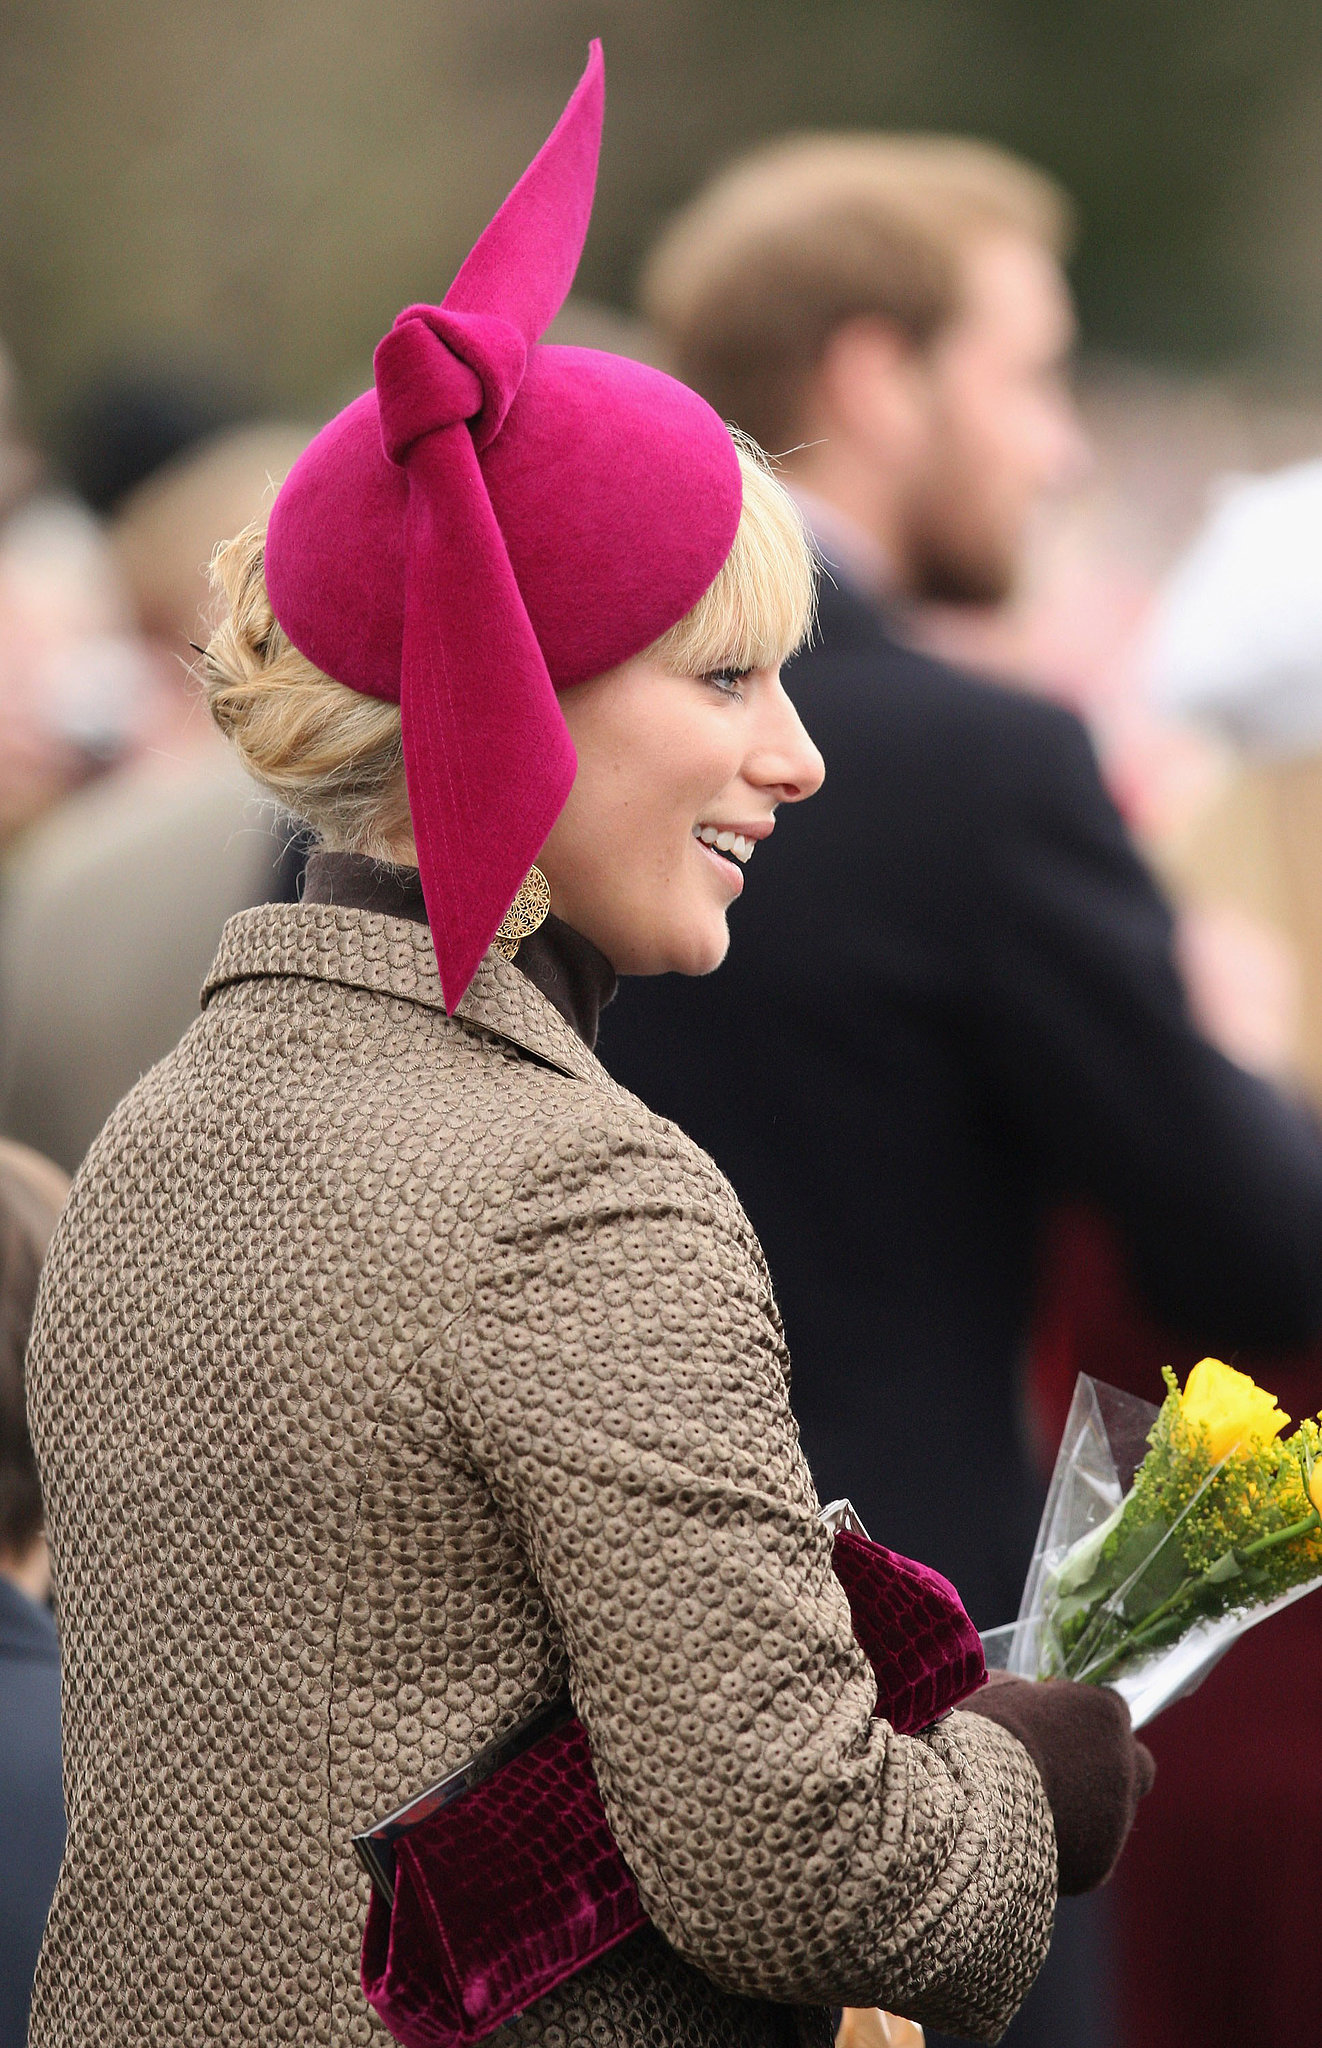 With an ornament atop her head, Zara attended Christmas Day church service in 2008.